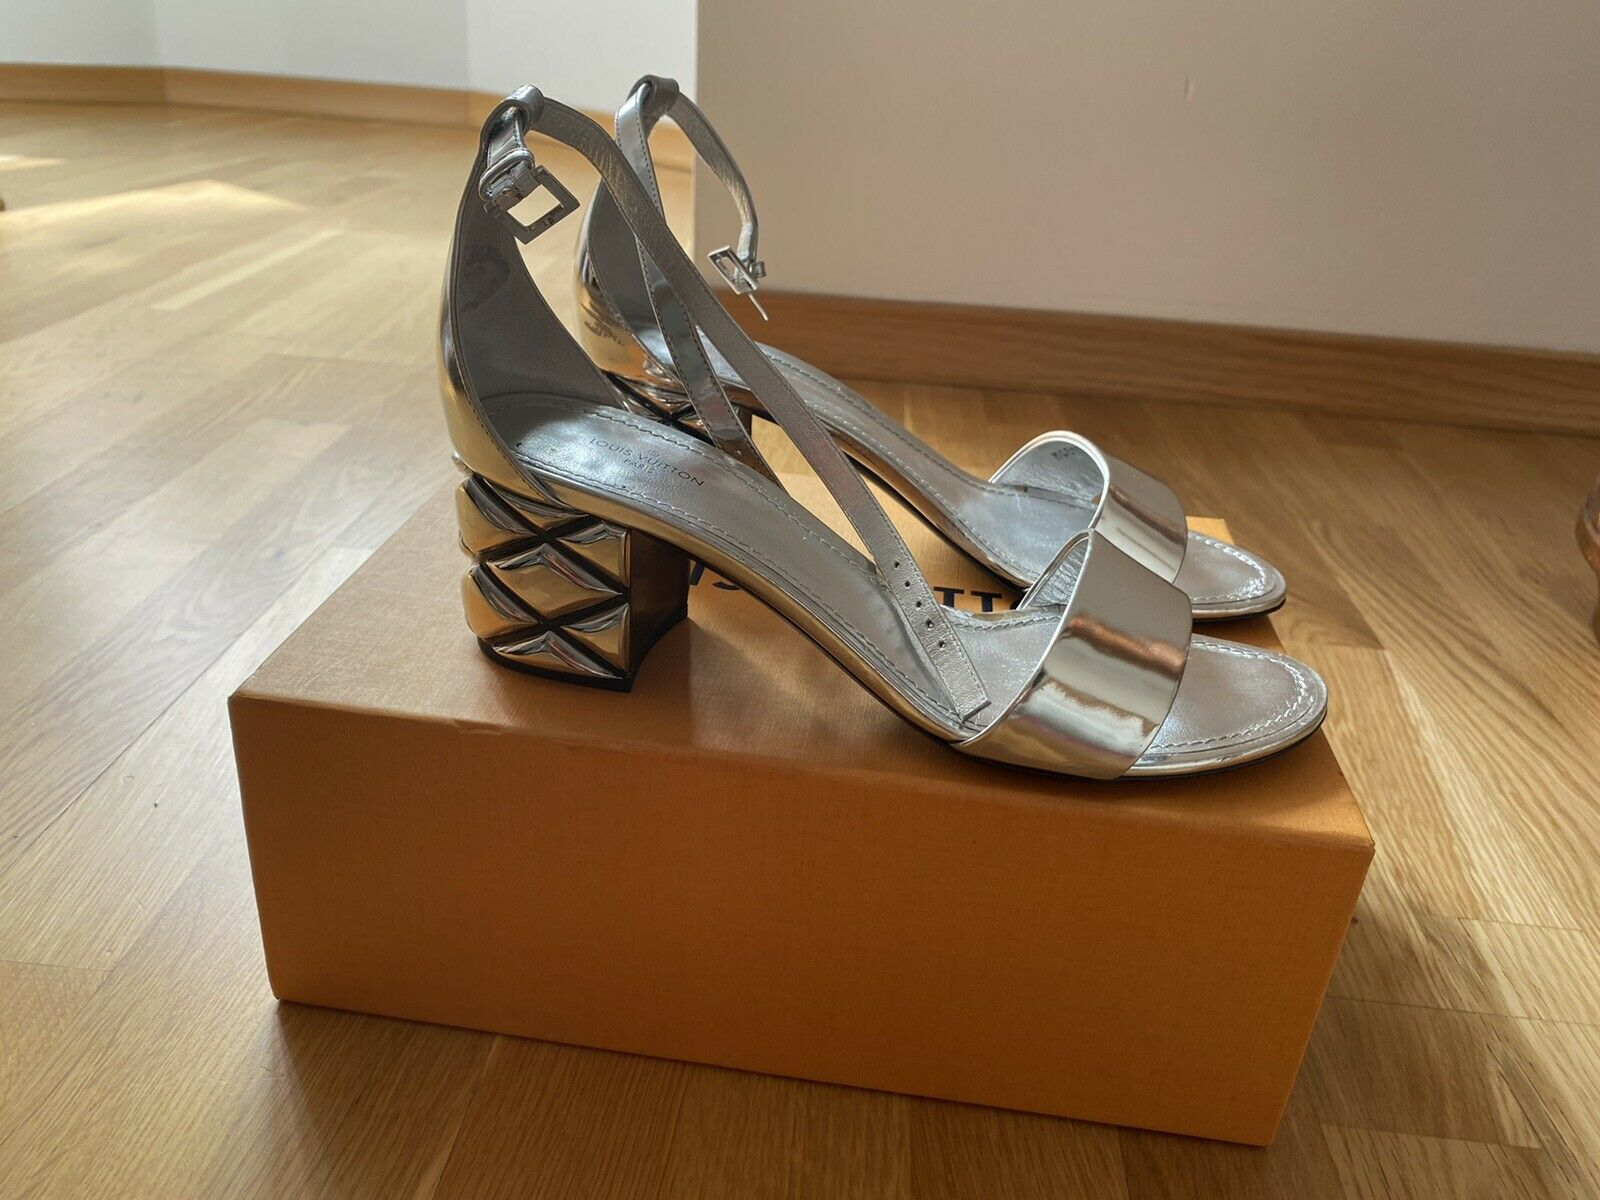 Louis Vuitton Sandalen Silver Light 38,5 OVP - 199.00,Kaufpreis 199,datum 26.07.2020 04:14:40,Website